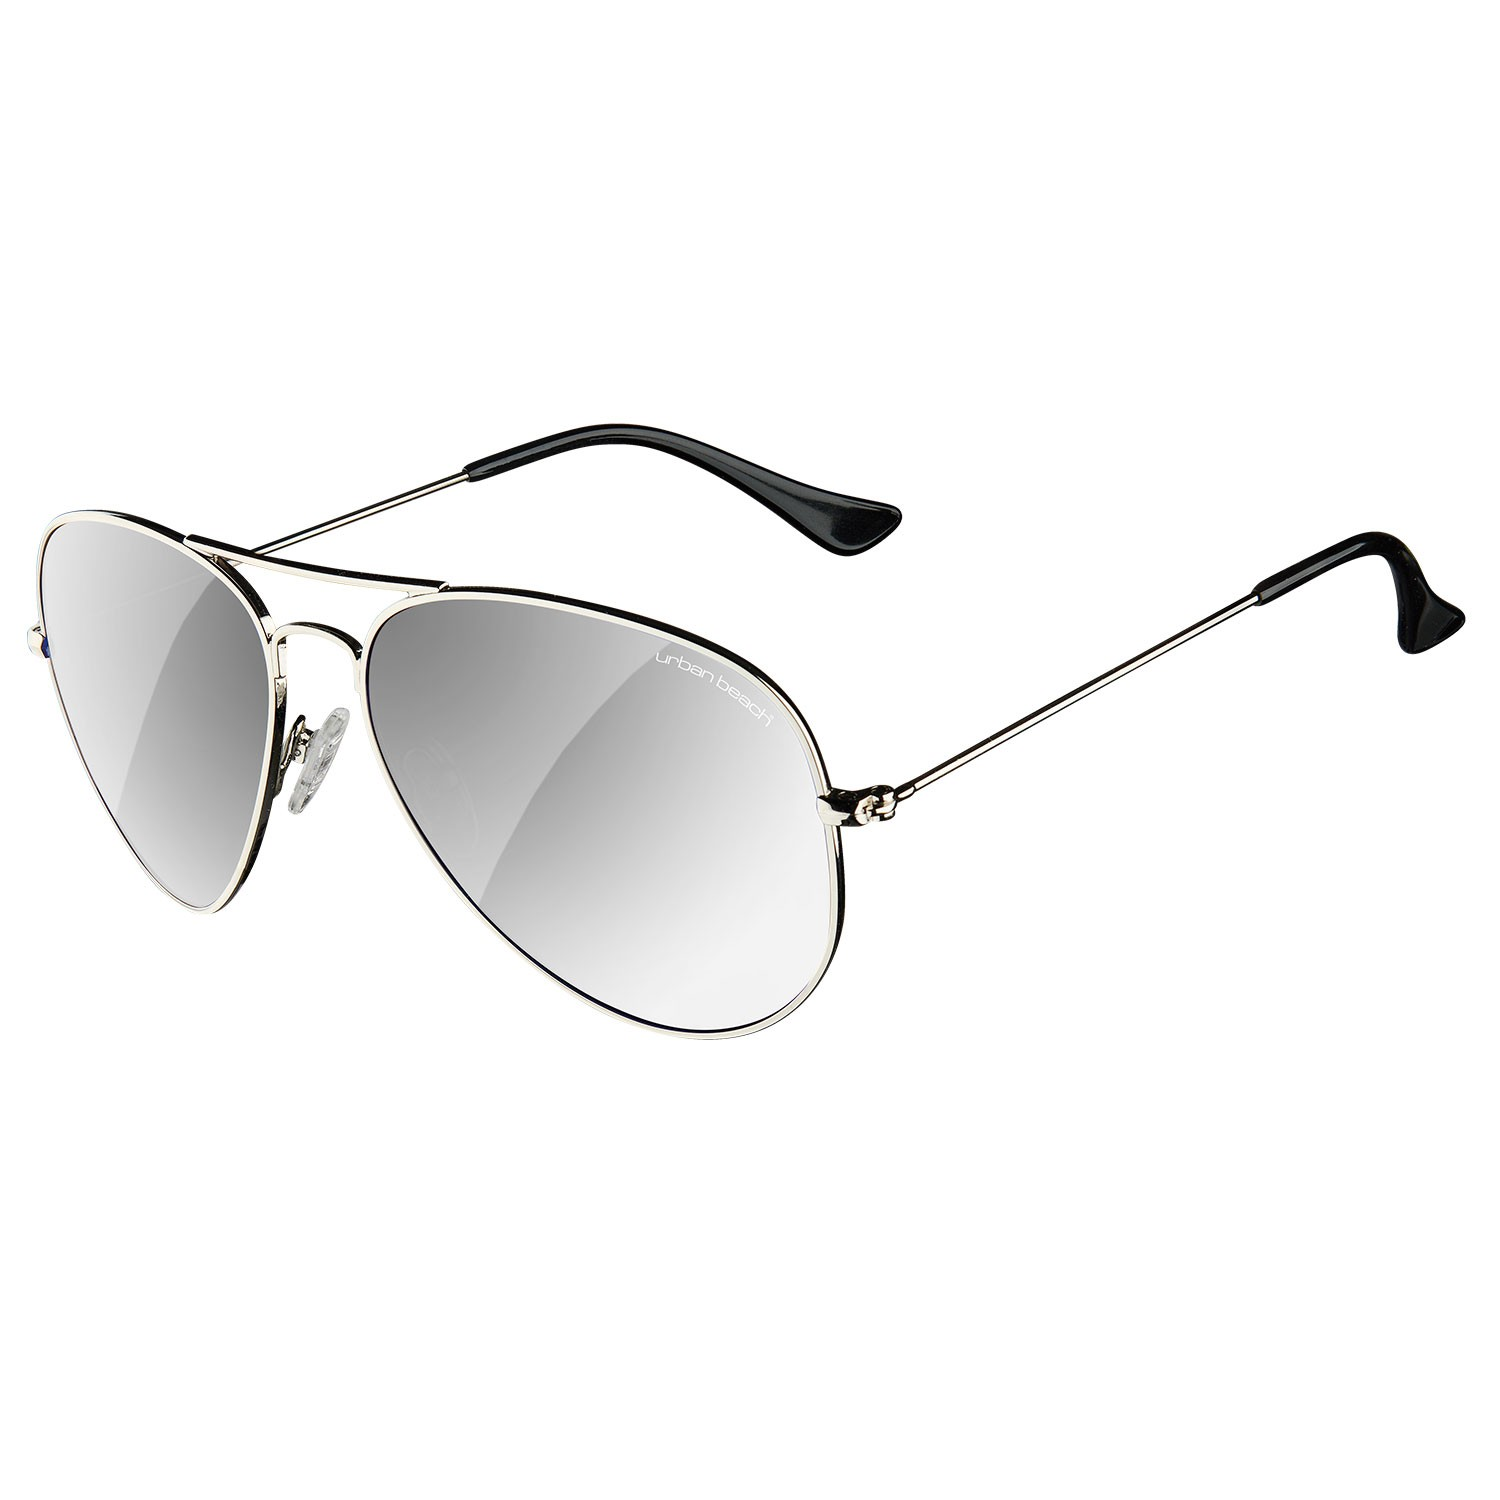 d59a6b37e2e Mens Stainless Steel Aviator Sunglasses Hunter- Free Delivery Over £20 - Urban  Beach